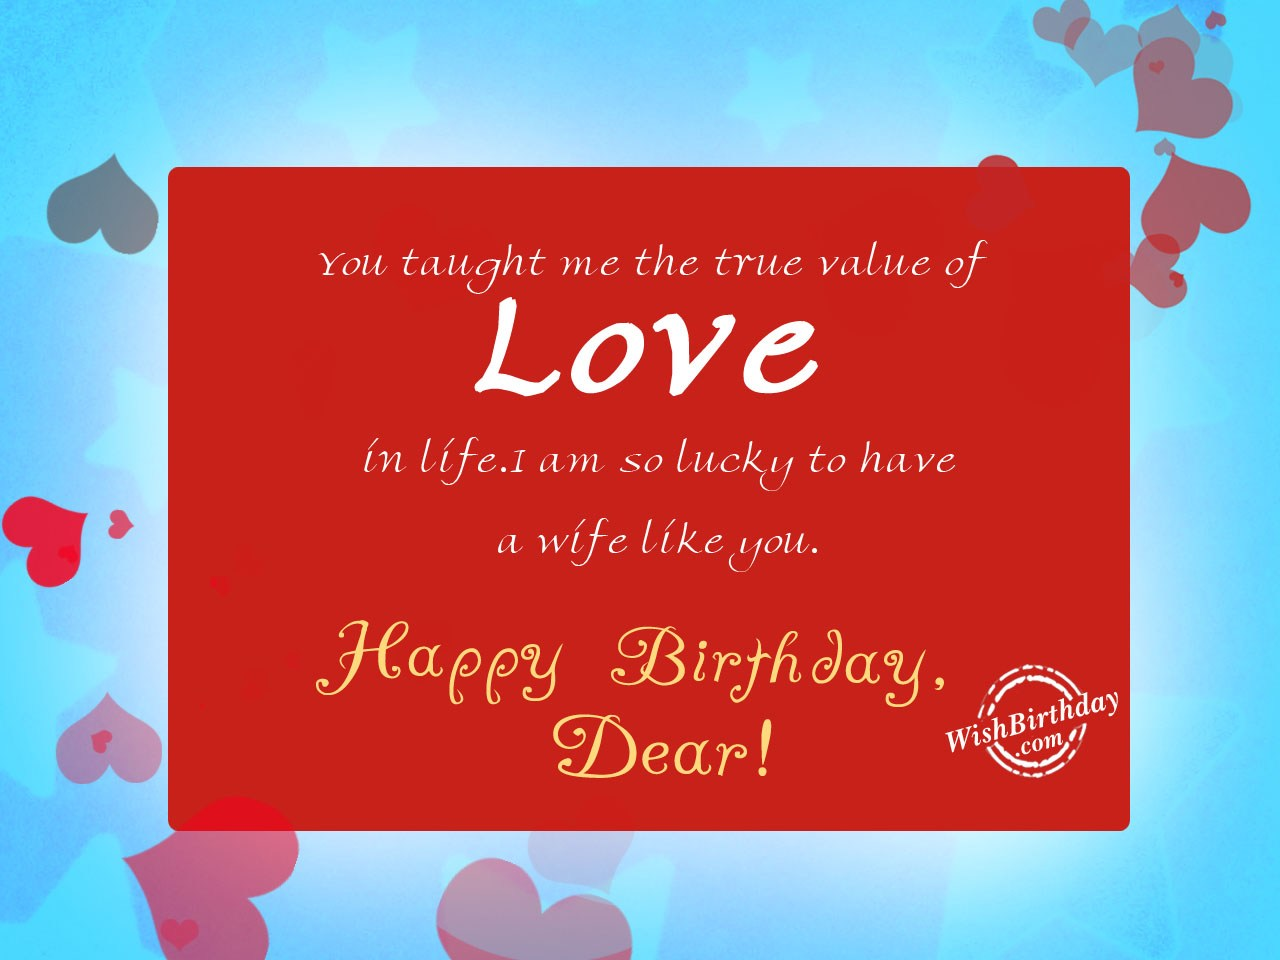 Birthday wishes for wife birthday images pictures you taught me the true value of love bookmarktalkfo Gallery